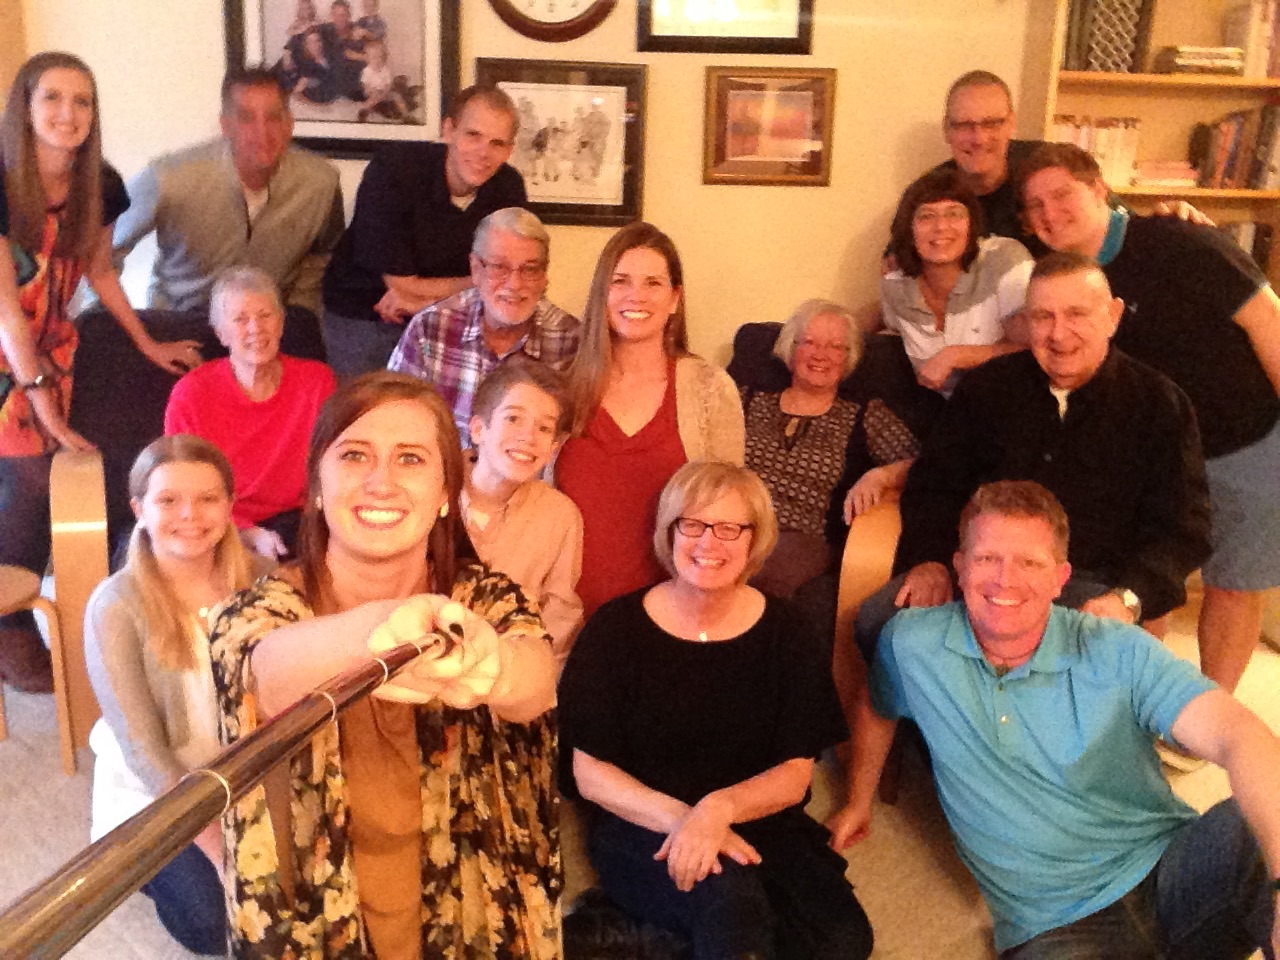 Our extended family a few years ago at our daughter's home for Thanksgiving